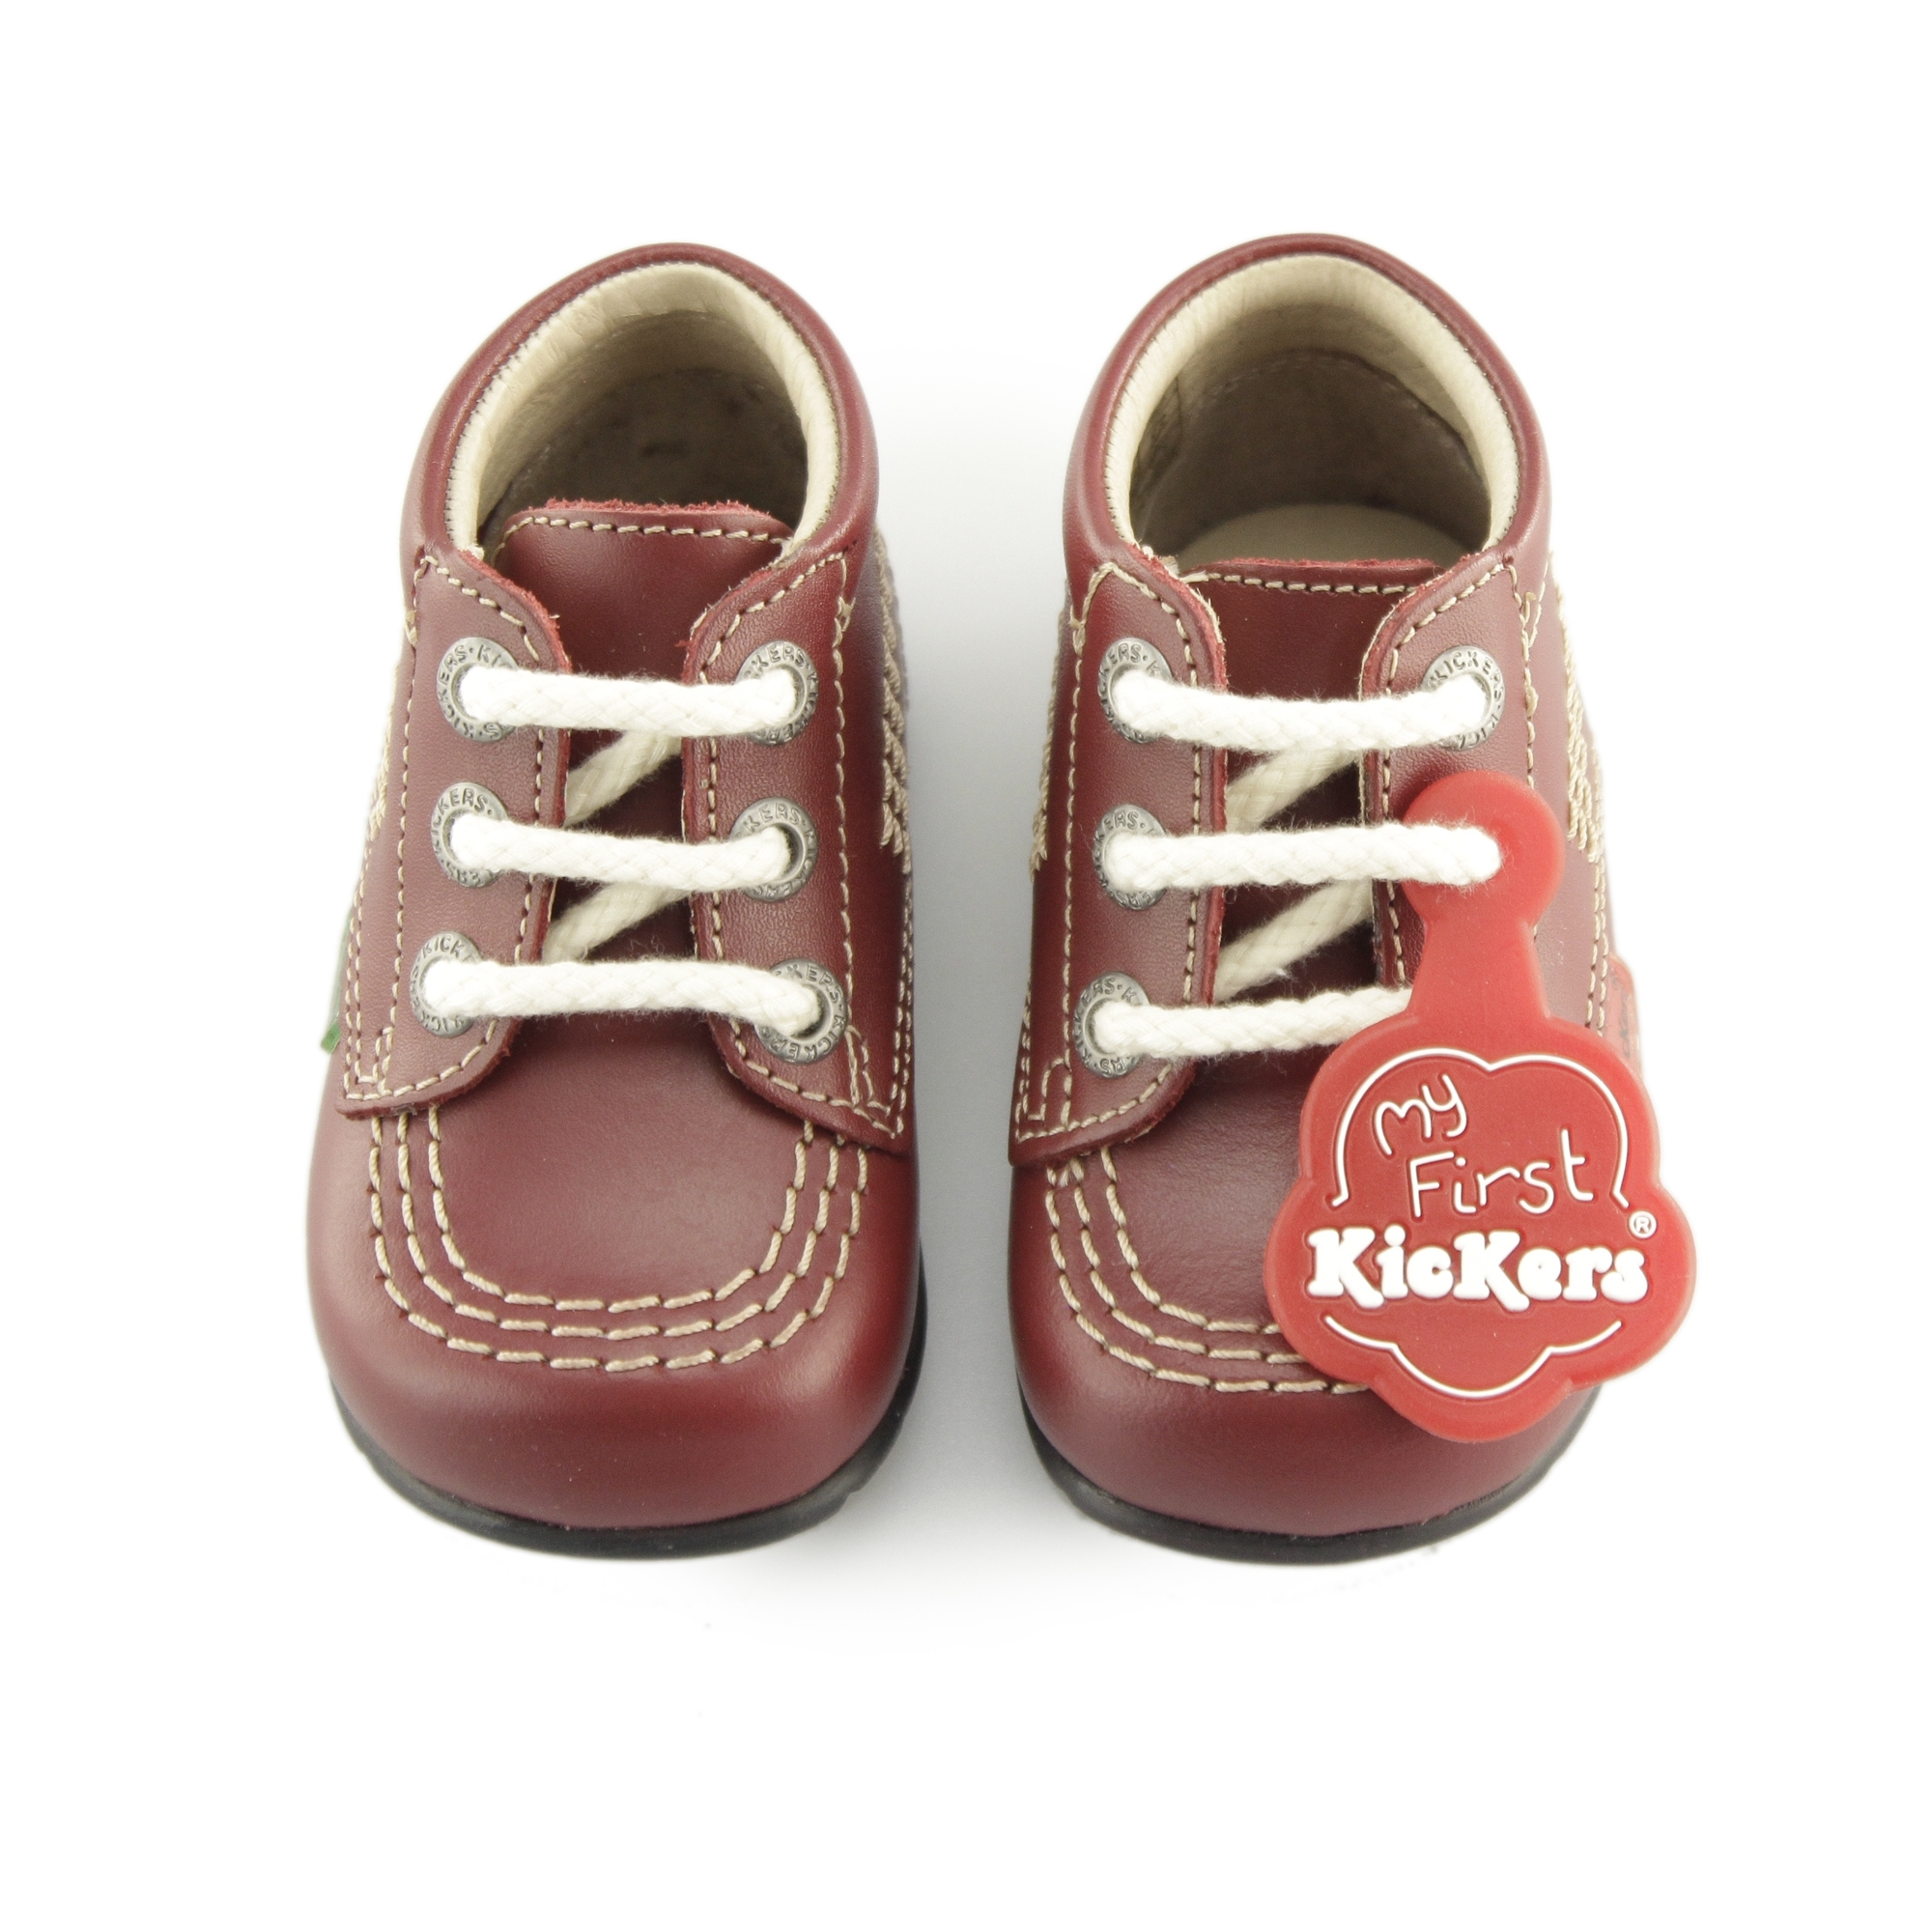 Kickers KICK HI B CORE Unisex Babies Toddlers First Walking Leather Boots Red